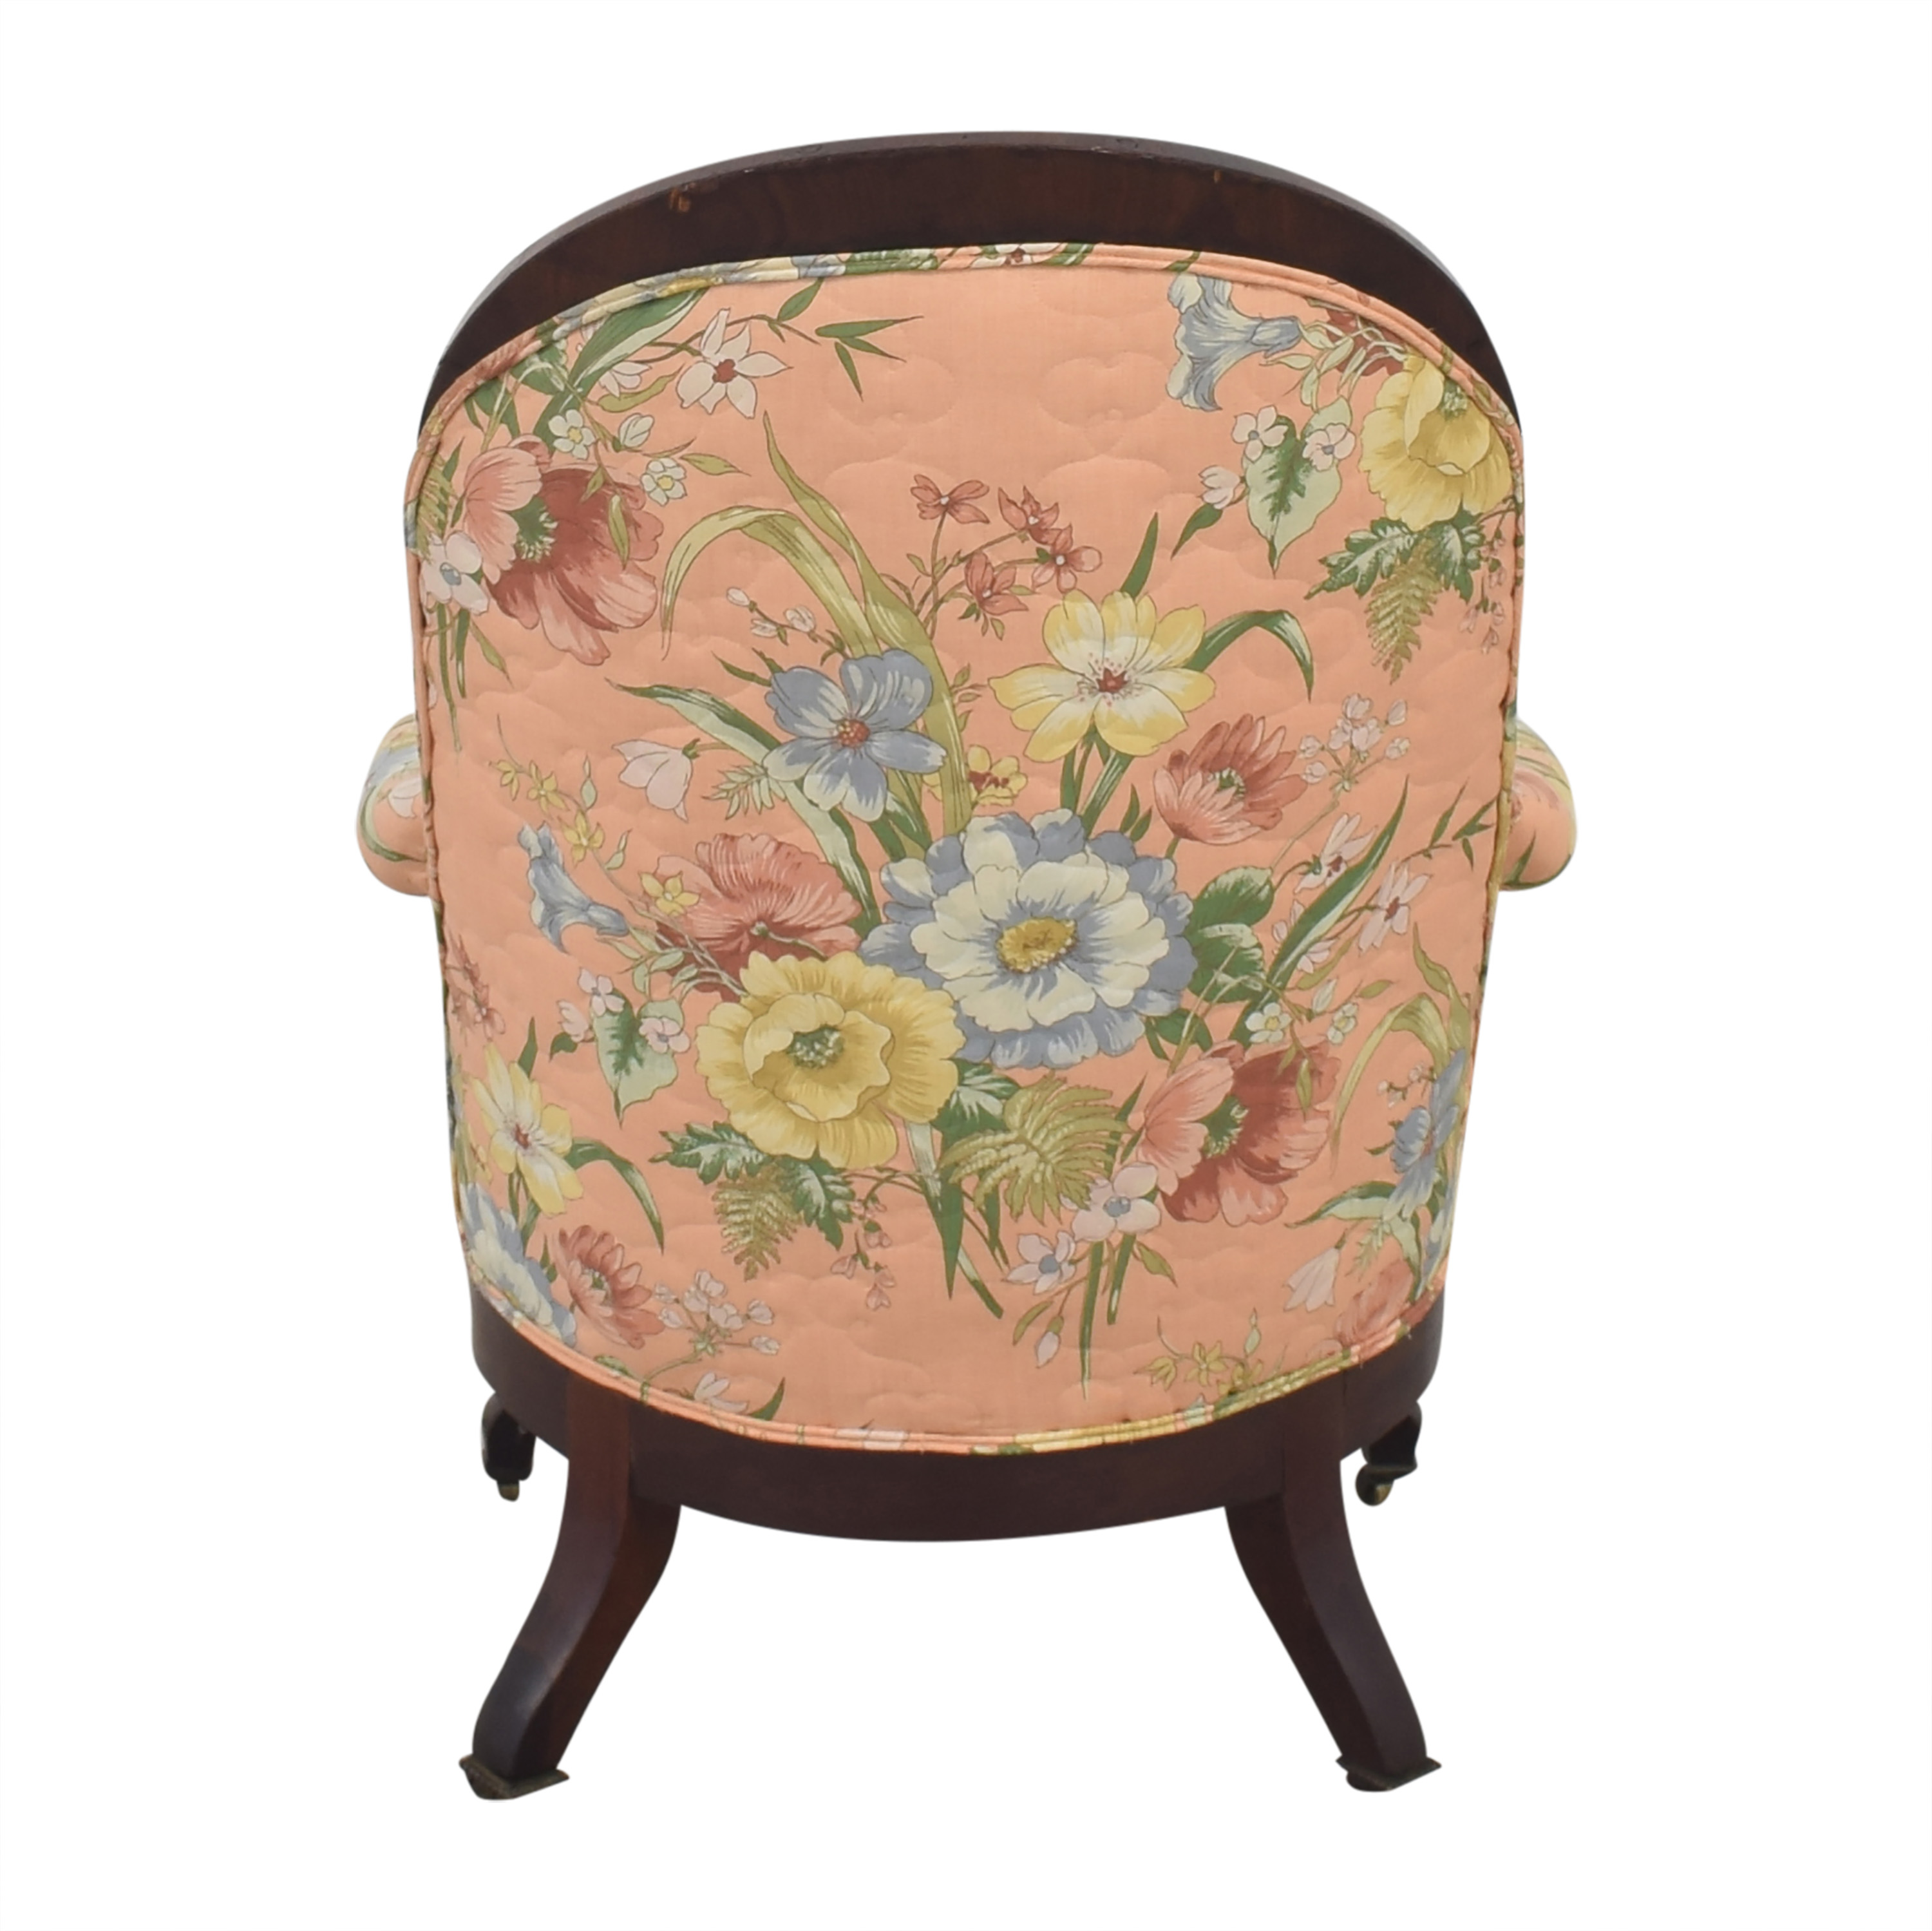 Vintage Style Upholstered Accent Chair multi